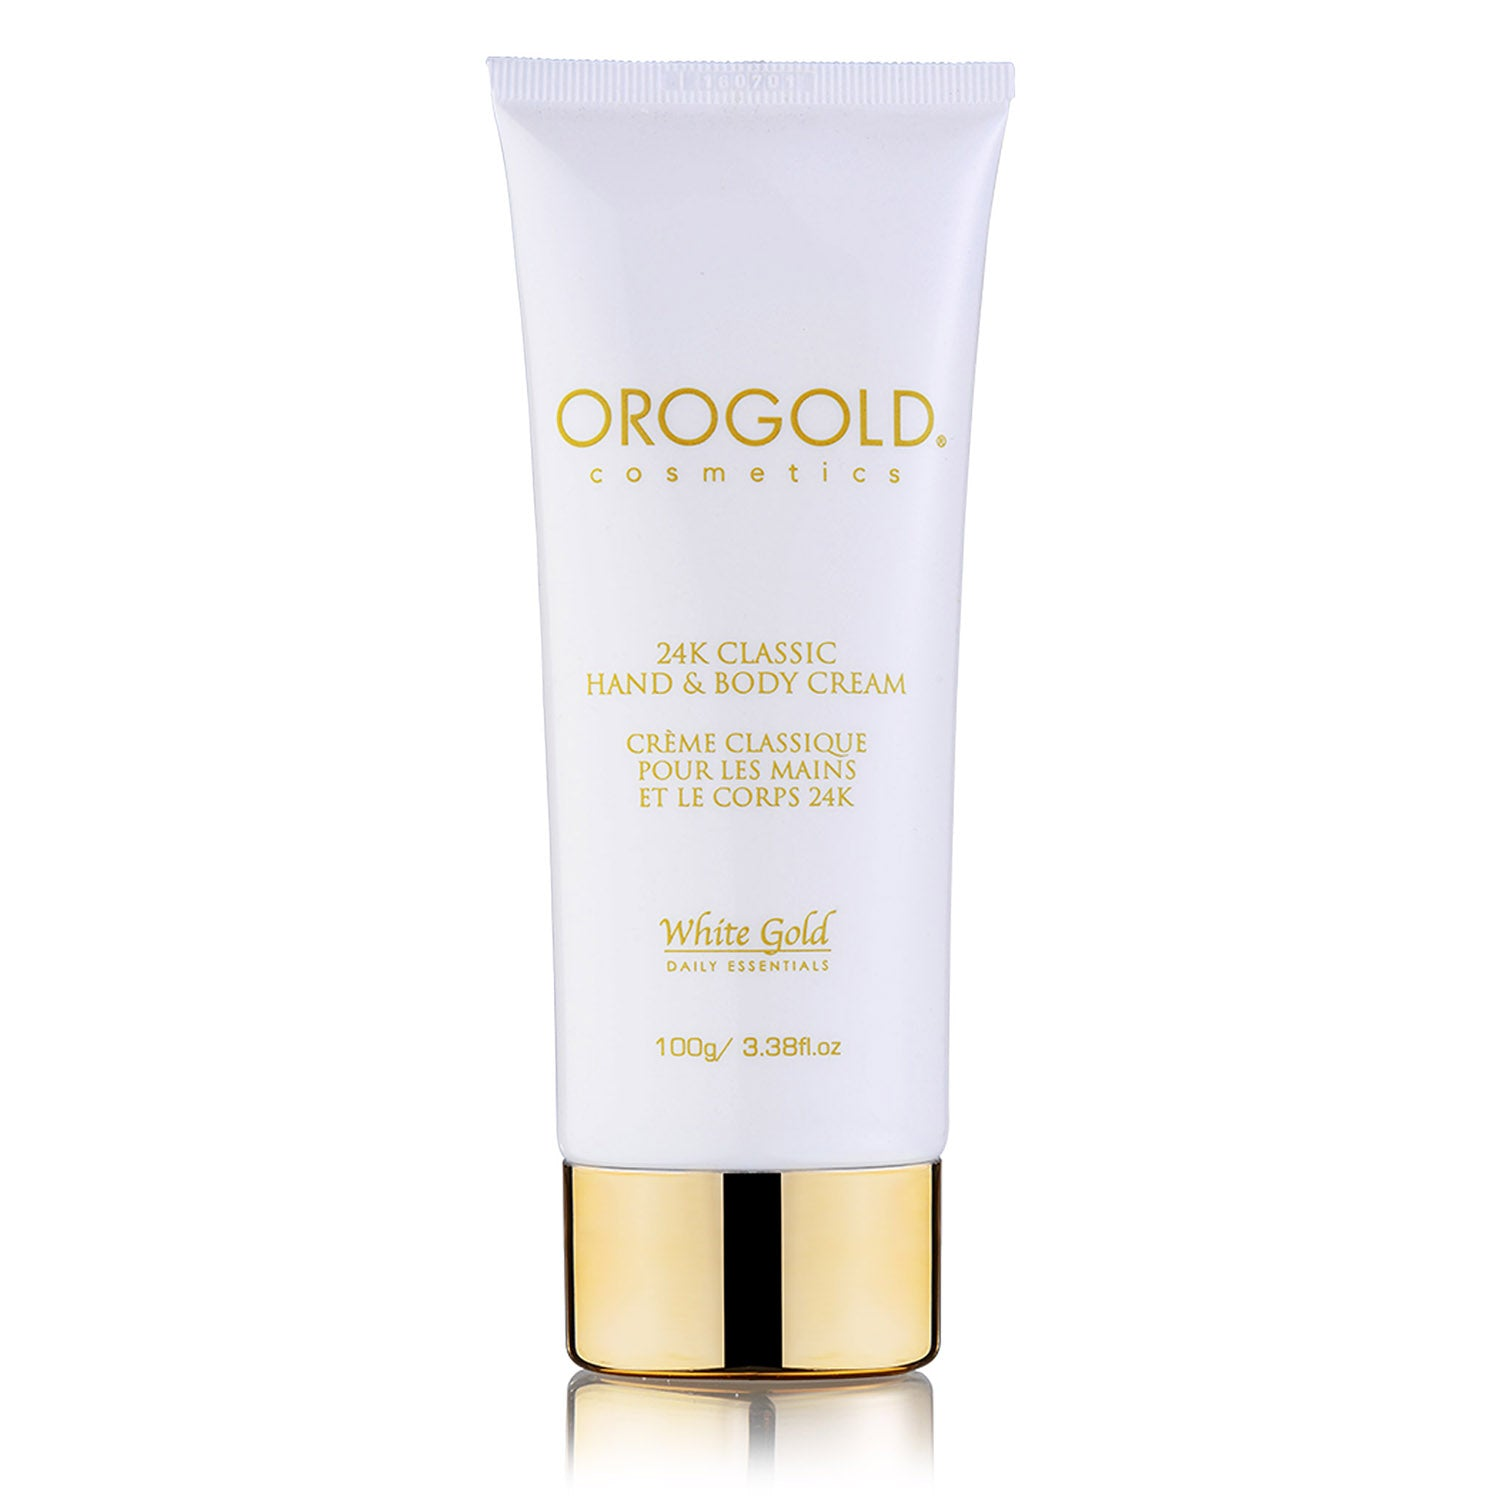 orogold hand and body lotion moisturizer cream